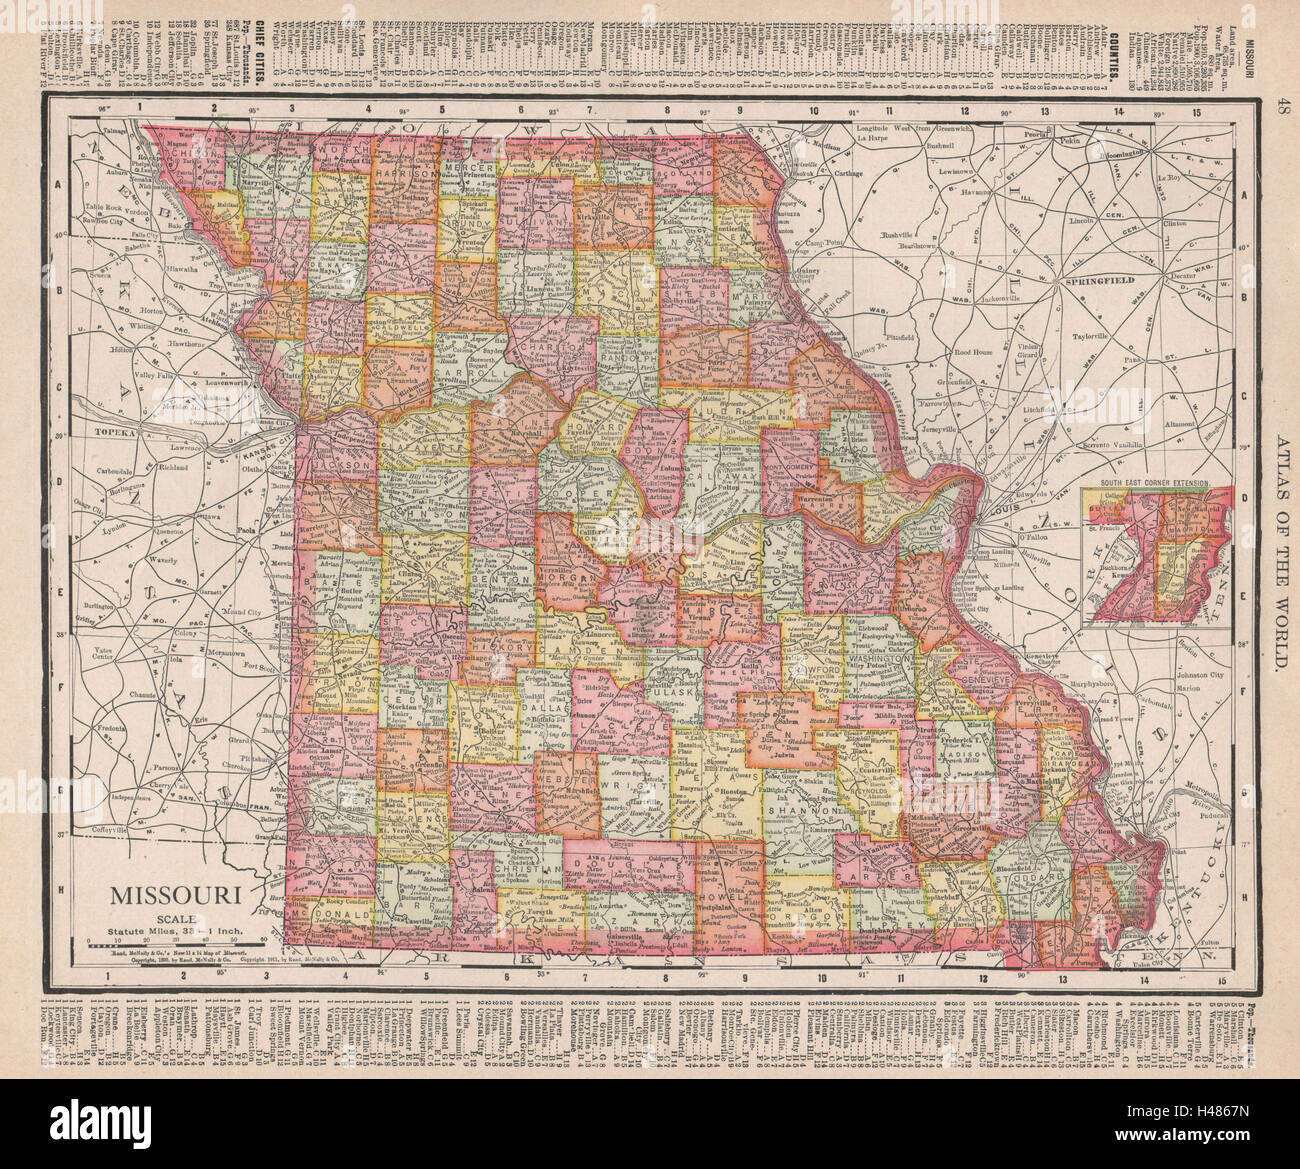 Missouri state map showing counties. RAND MCNALLY 1912 old antique ...